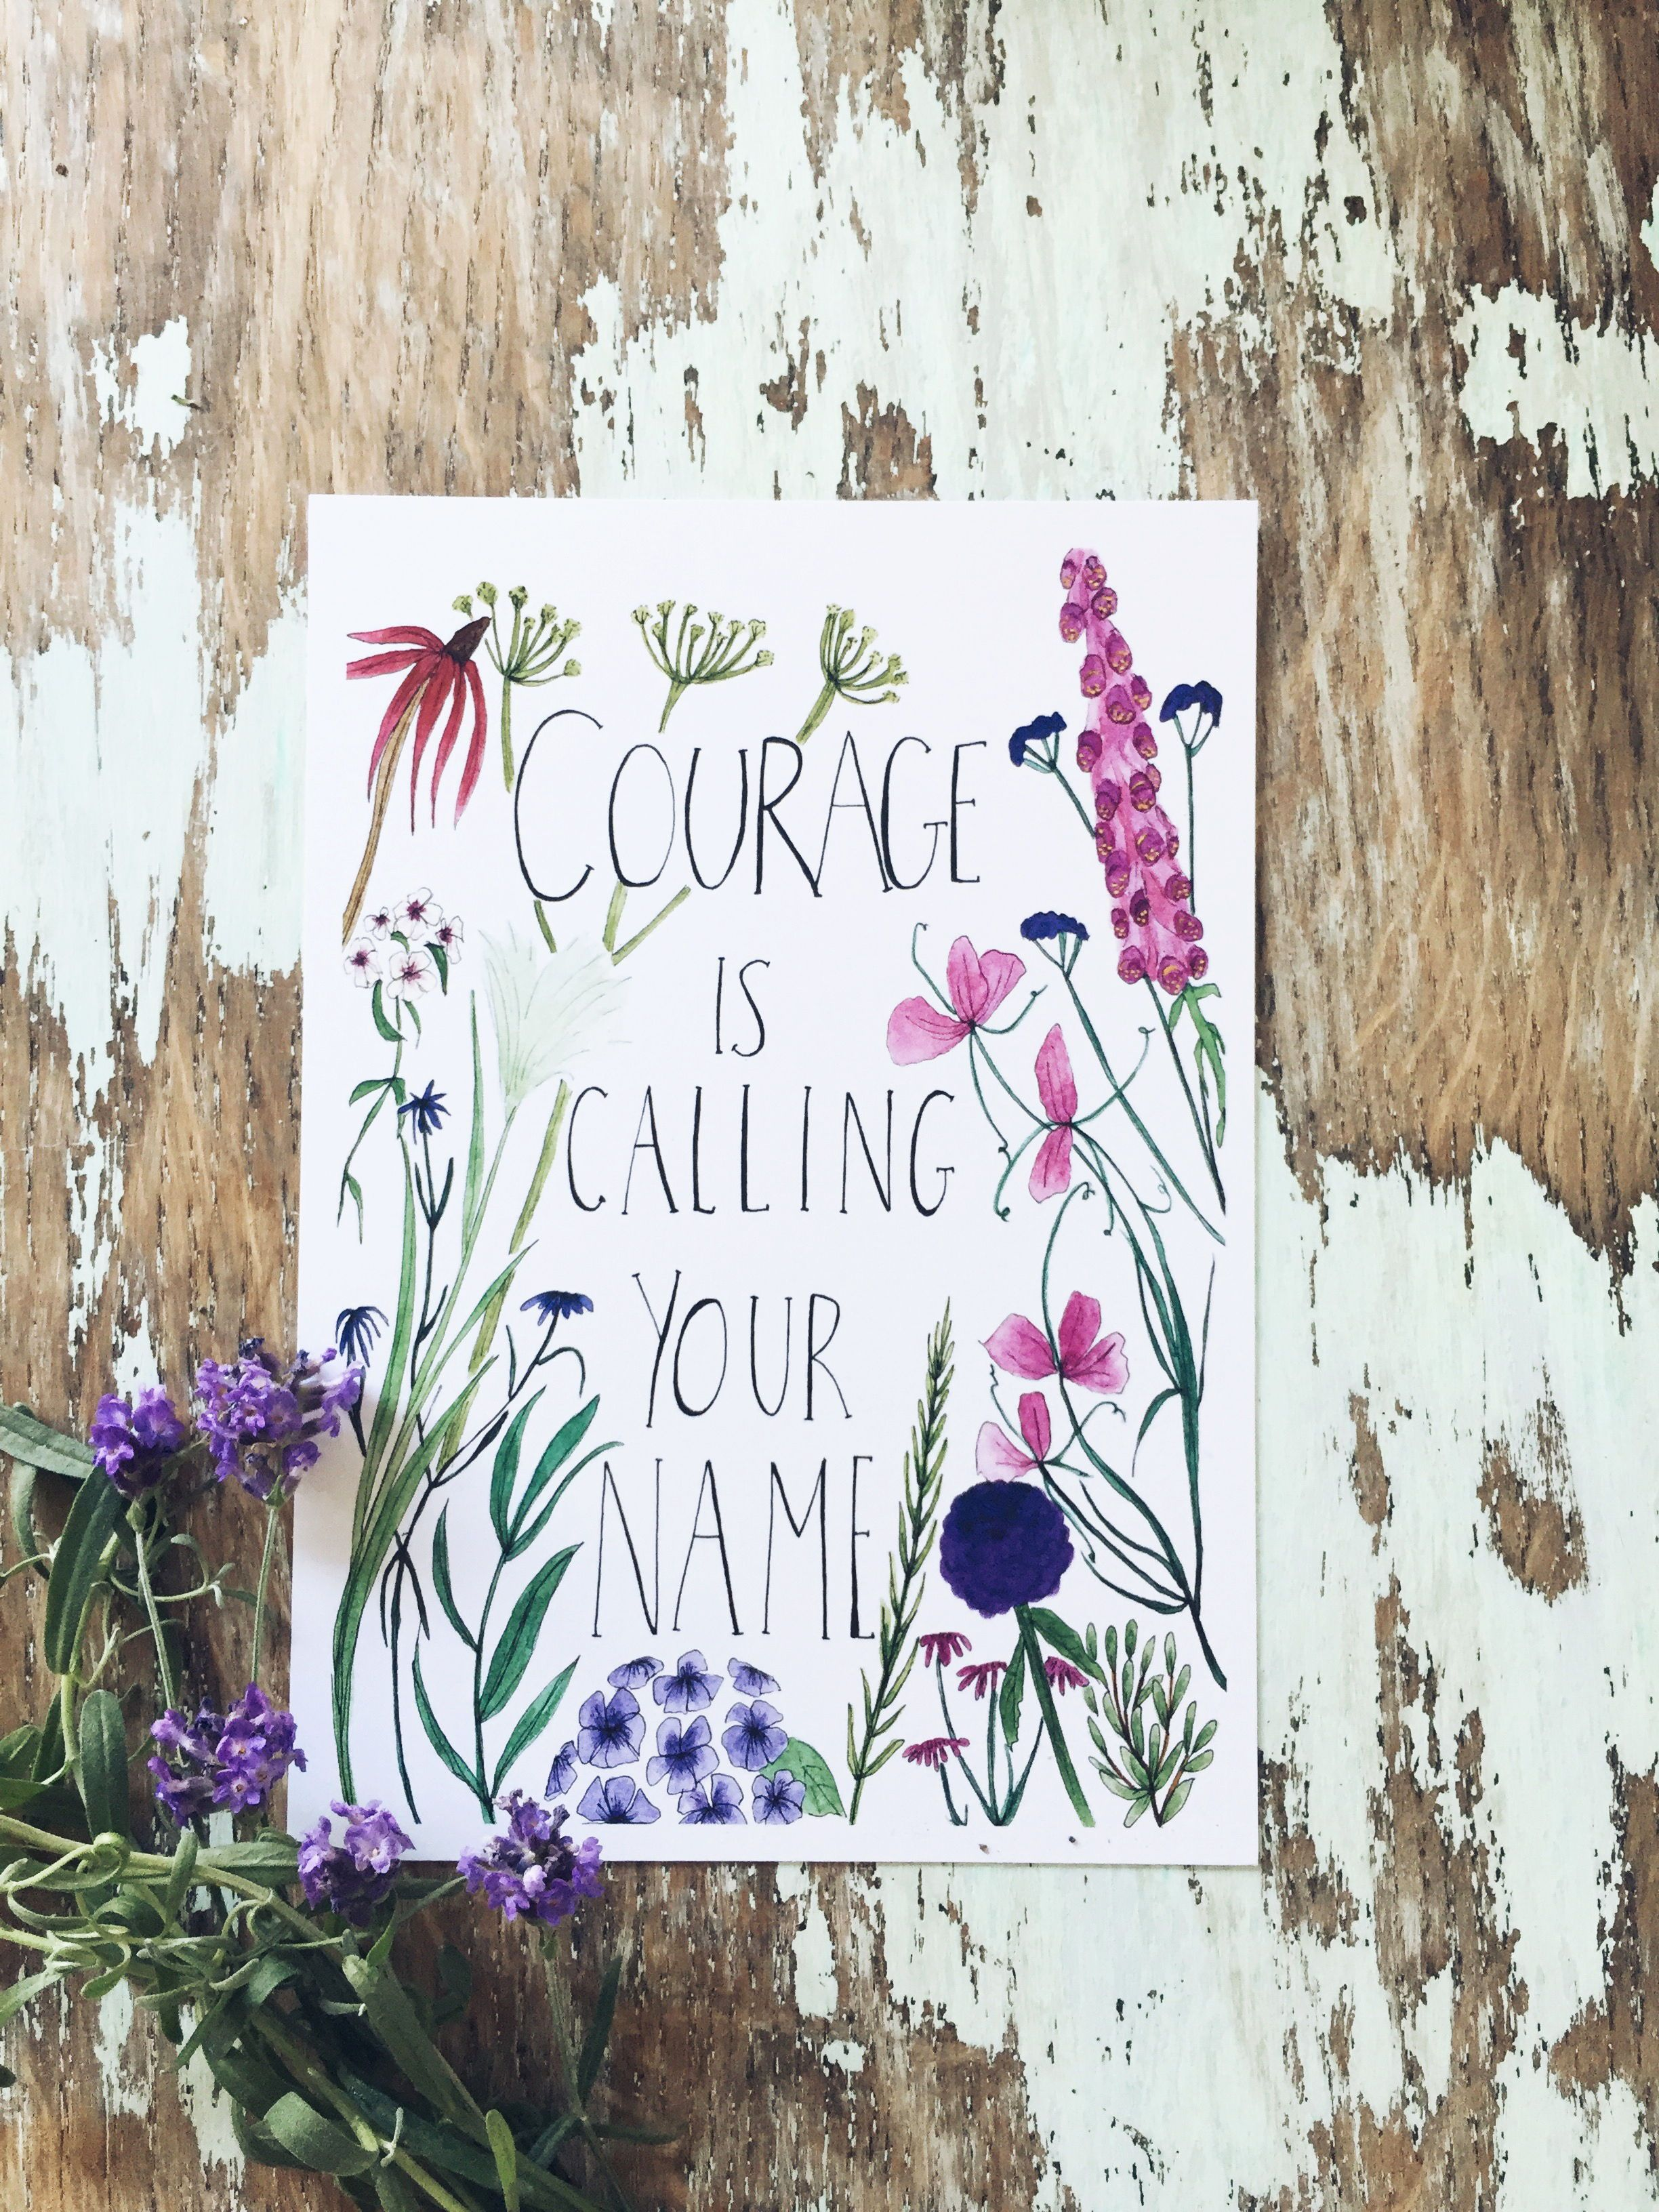 9 Courage Is Calling Your Name Floral Art Print With British Garden Flowers Floral Prints Art Flower Prints Art Flower Art